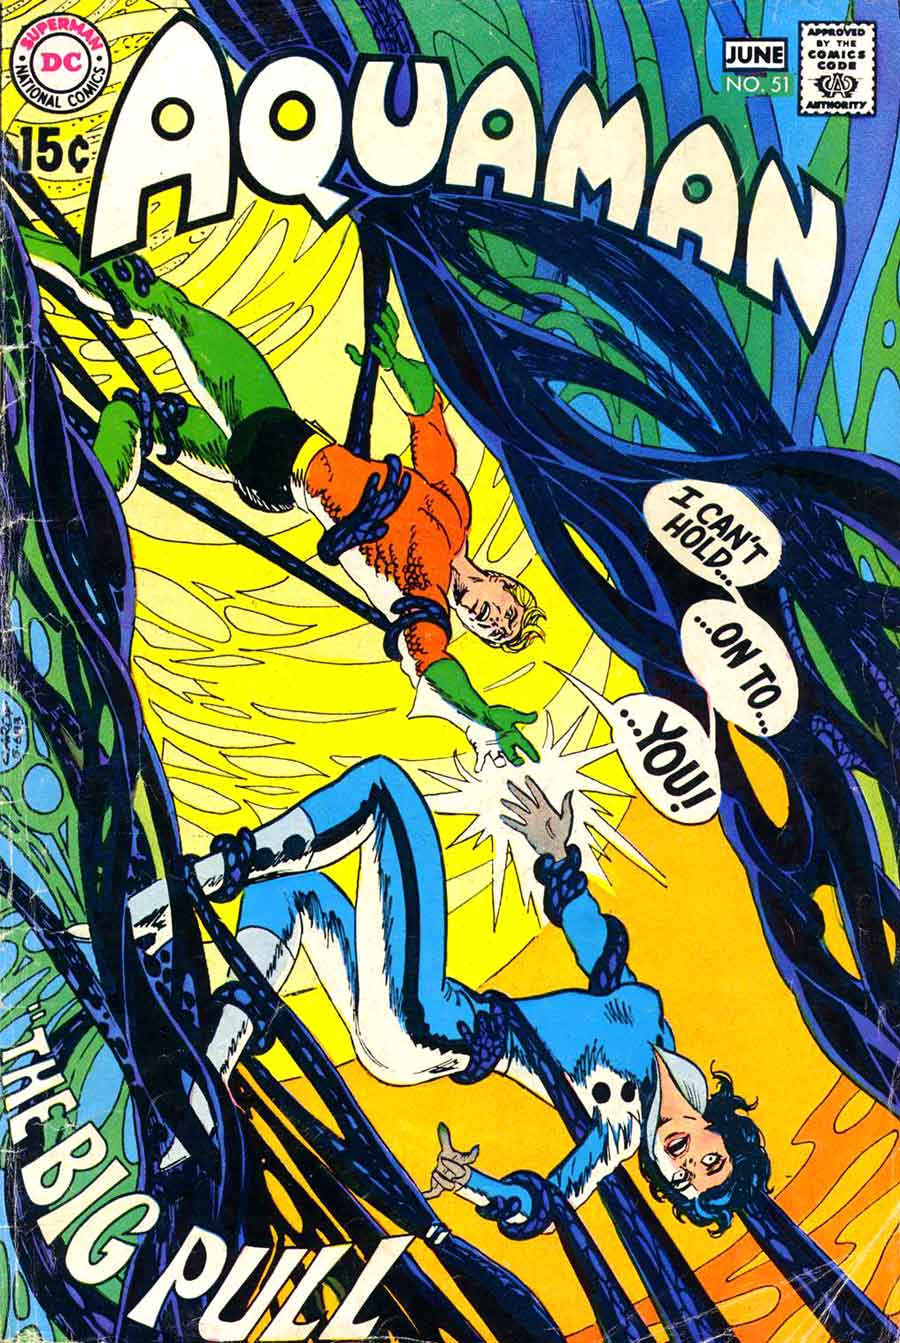 Aquaman v1 #51 dc 1970s bronze age comic book cover art by Nick Cardy